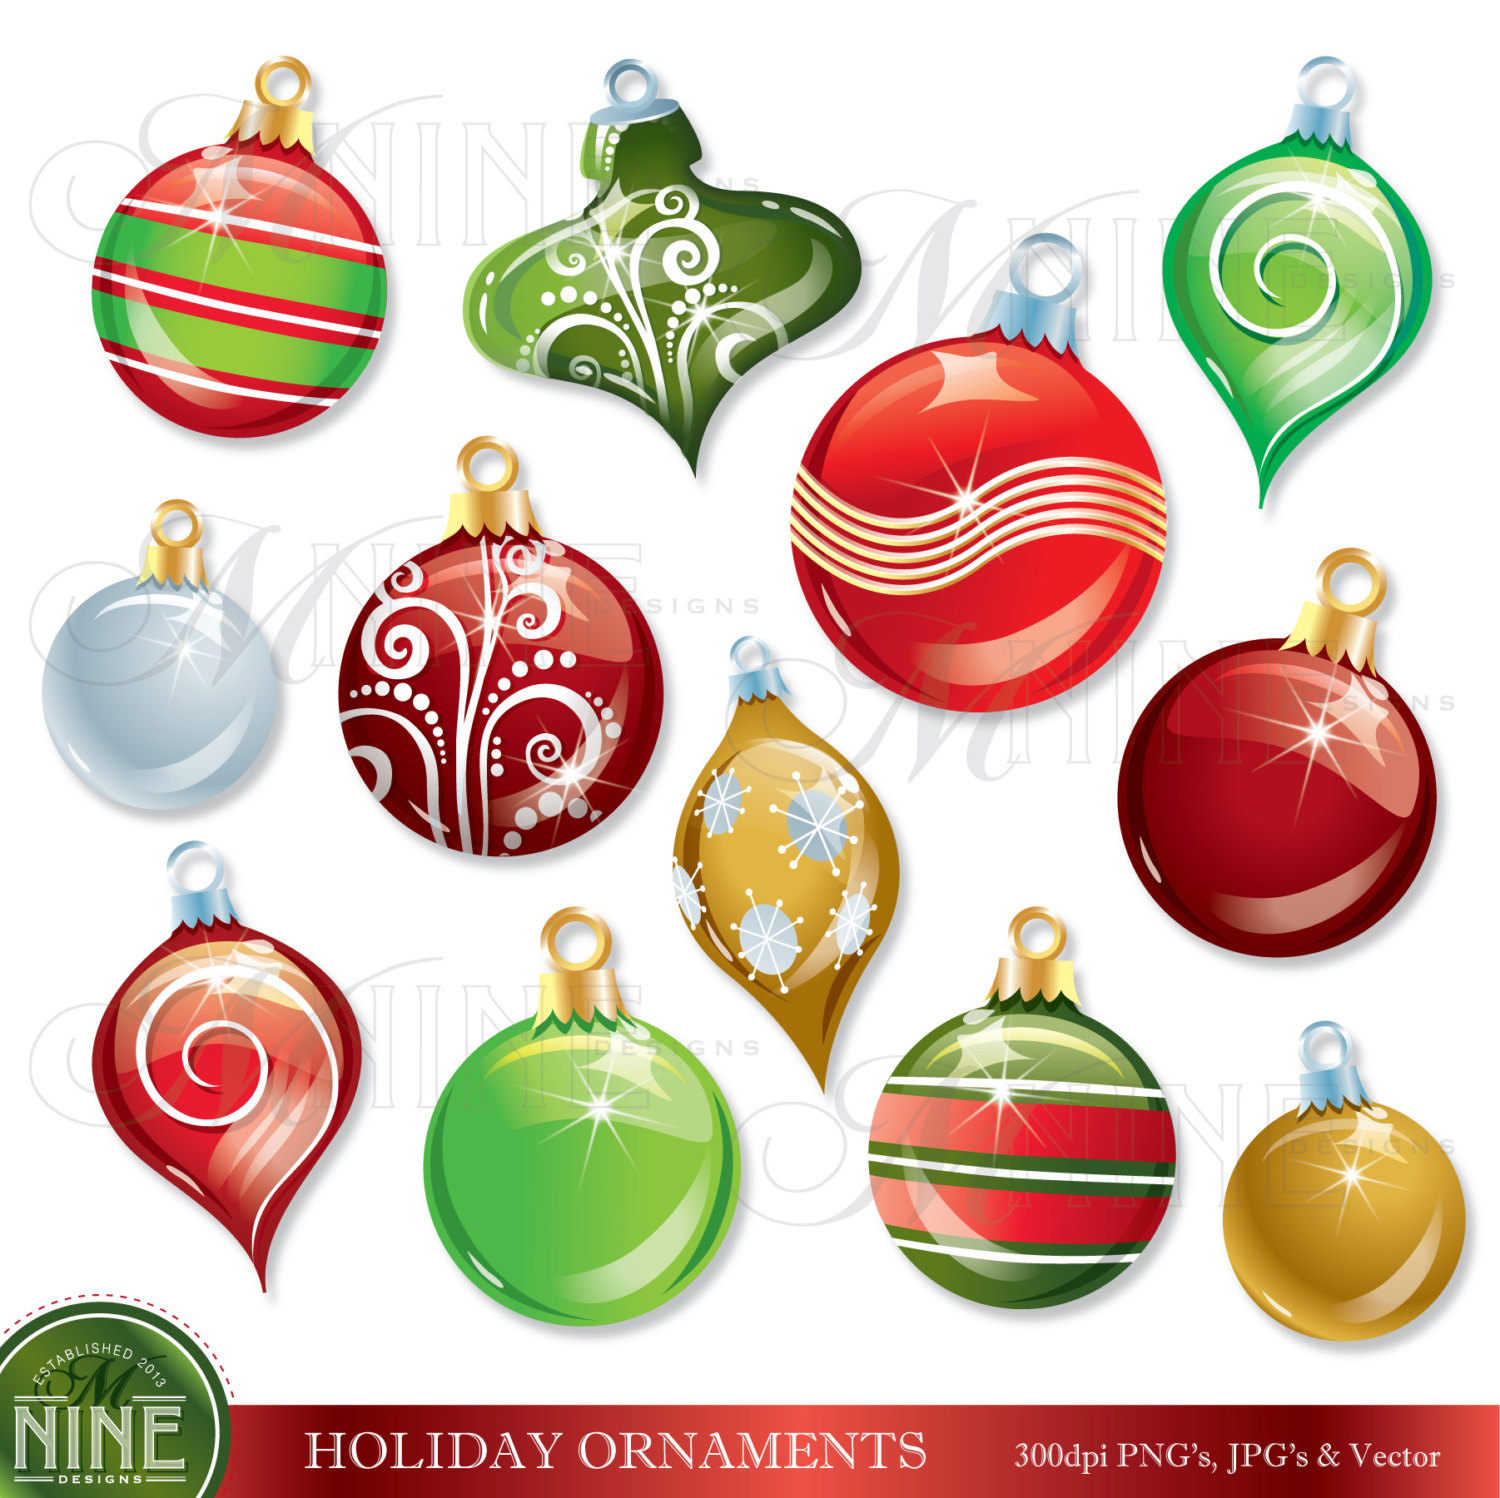 Christmas tree ornaments clipart suggest